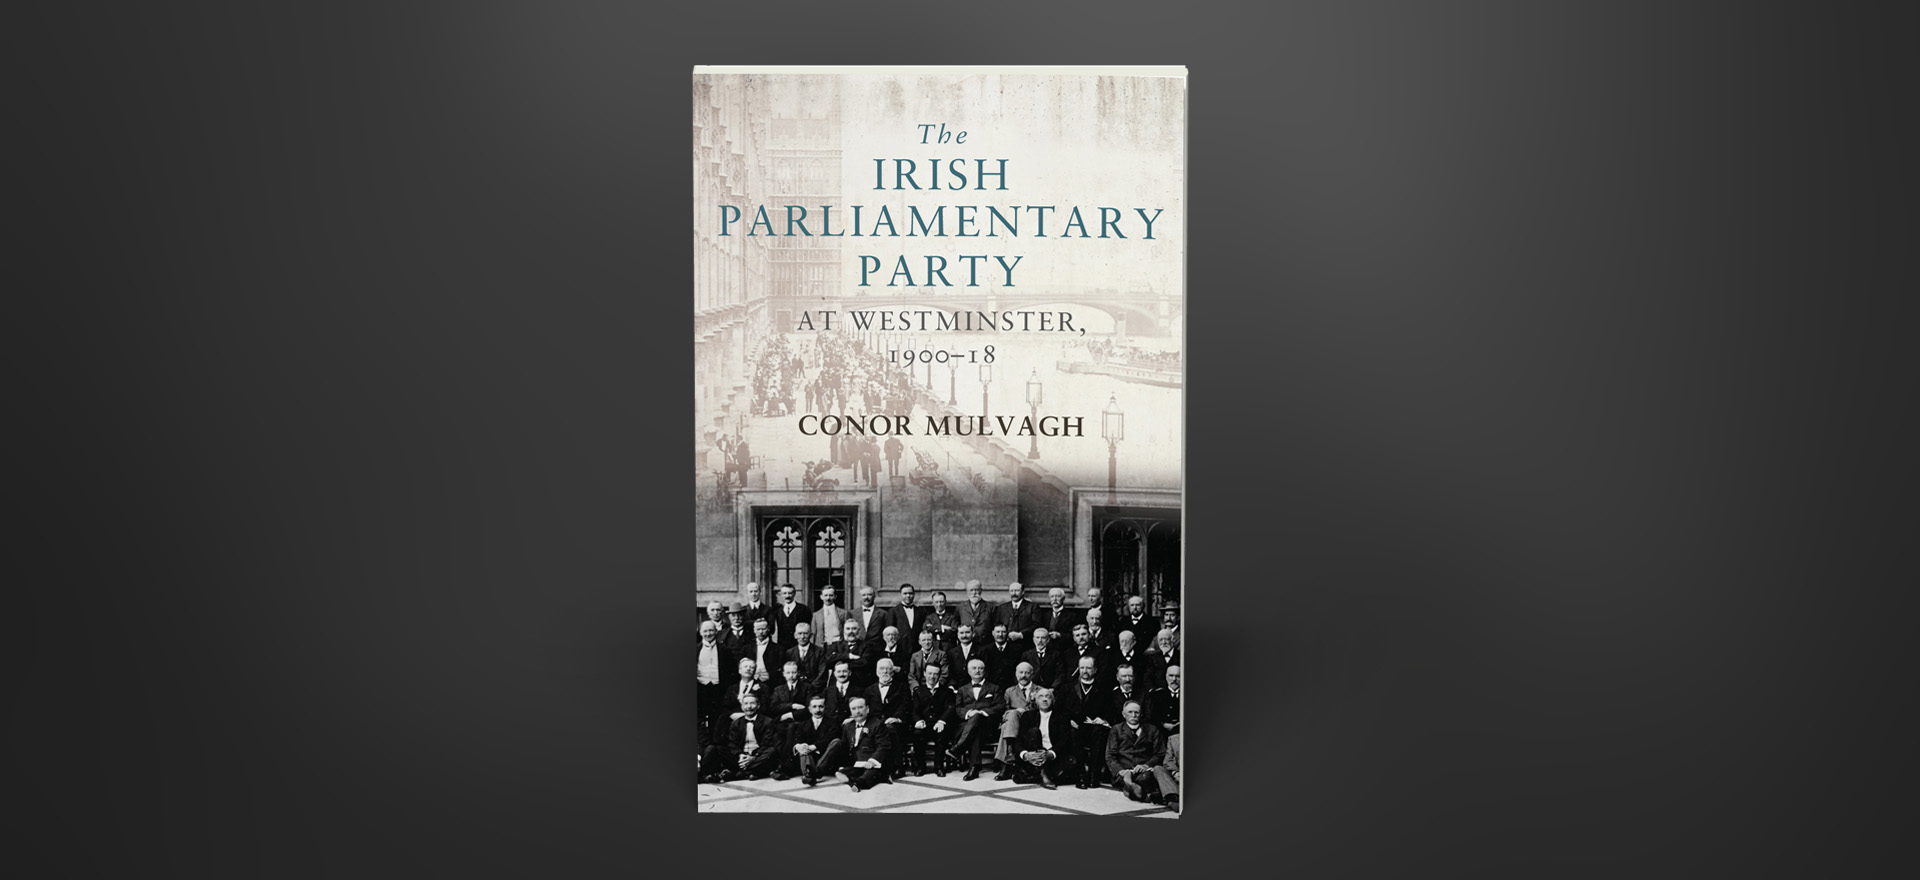 The Irish Parliamentary Party at Westminster